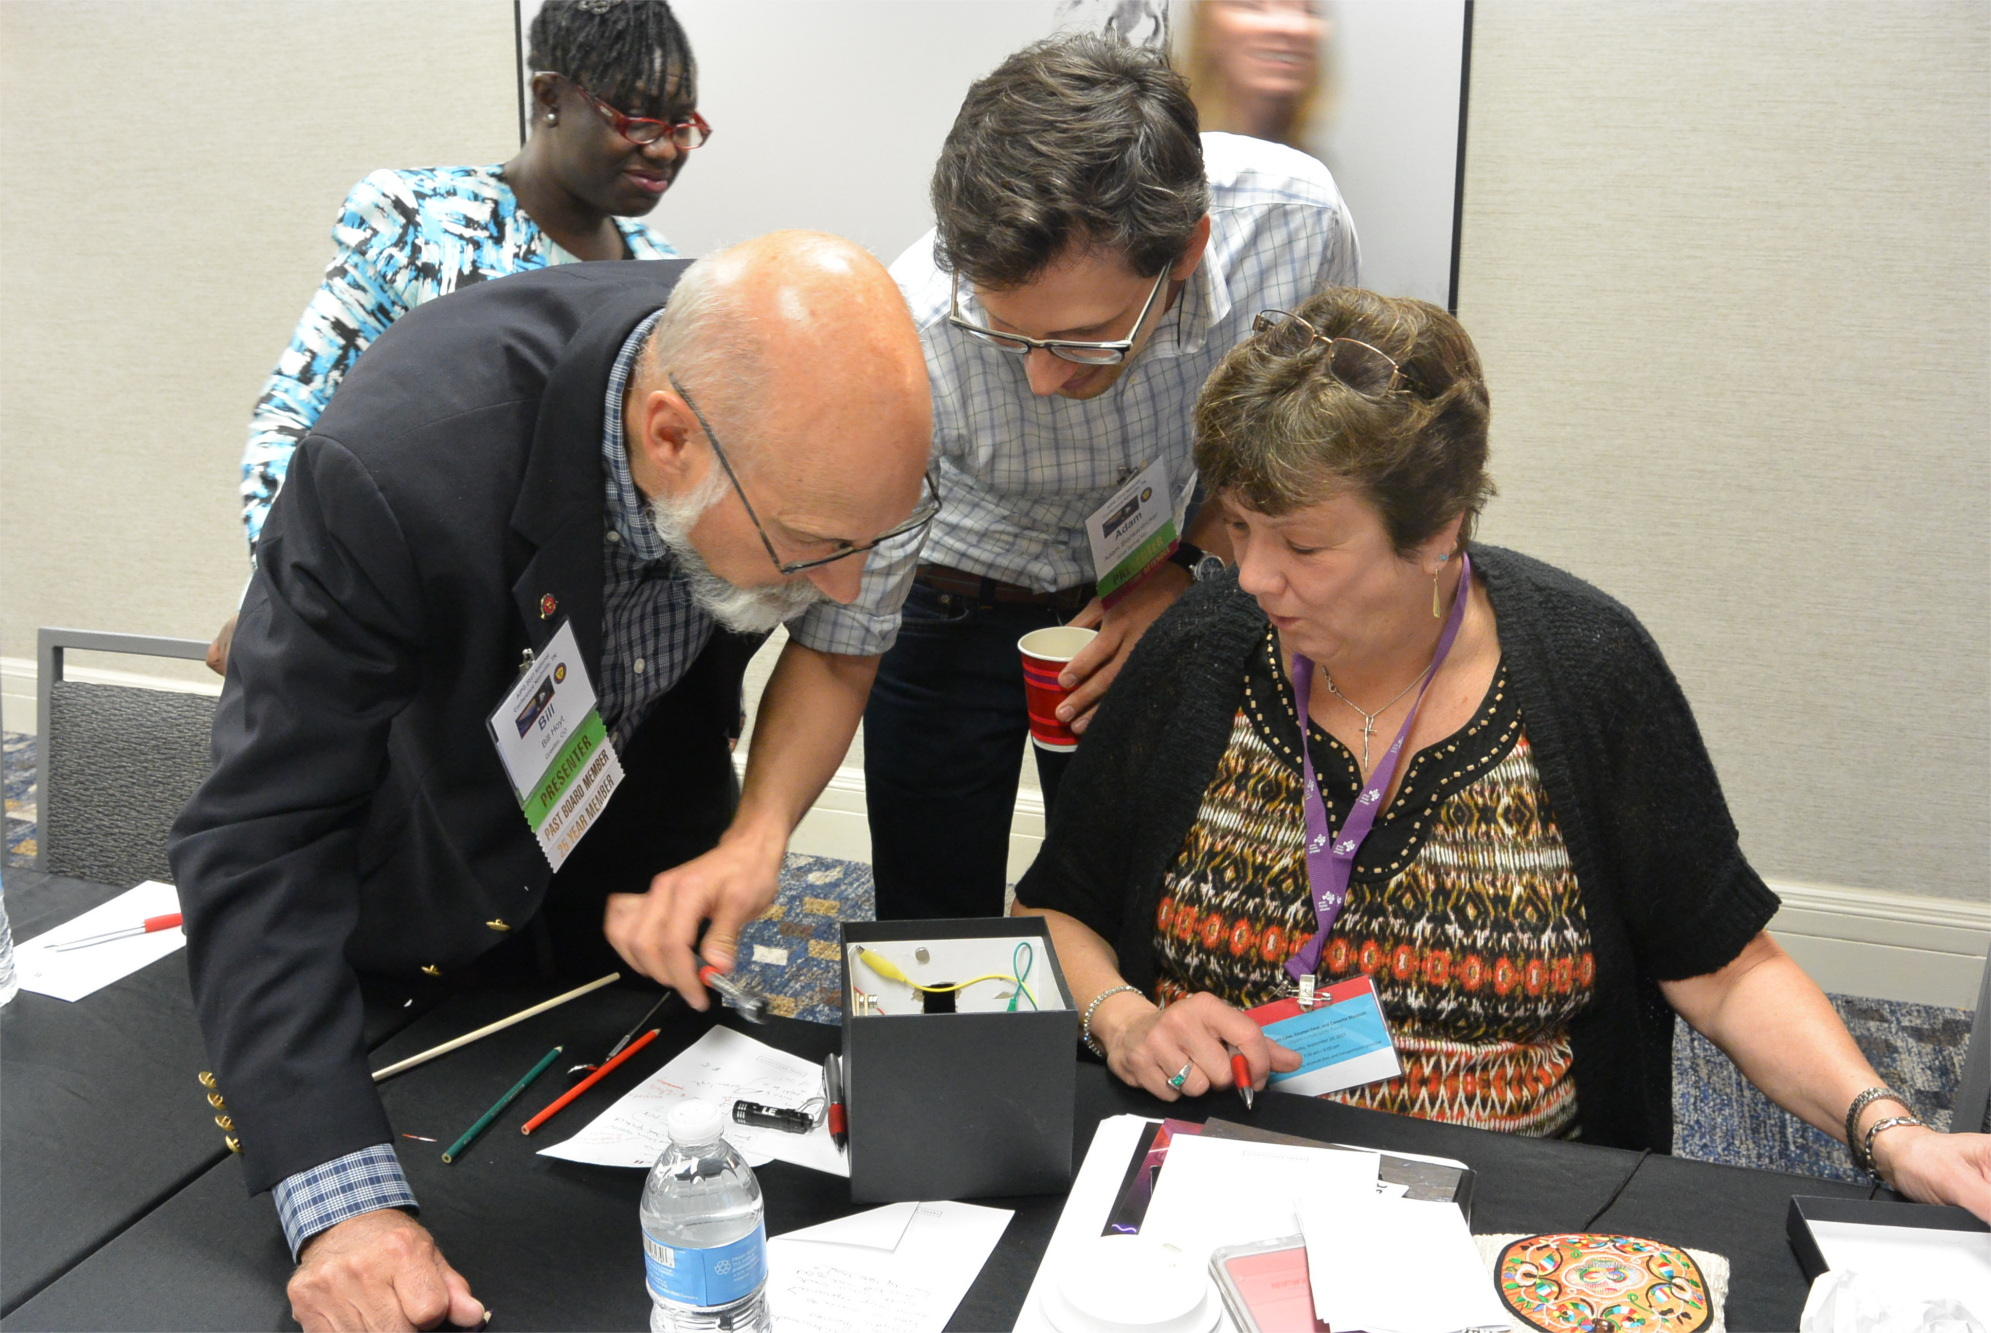 Three people looking into a small box. A few wires are exposed from the box. One person is holding a light near the box.